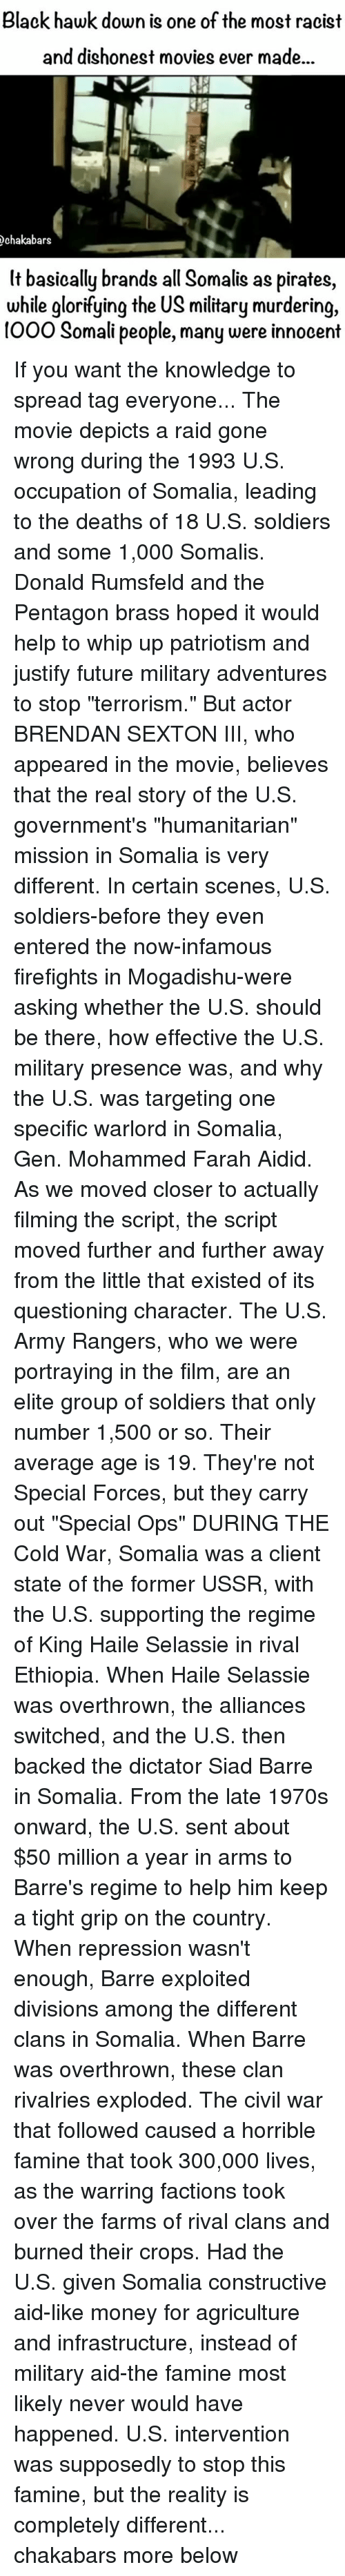 "Future, Memes, and Money: Black hawk down is one of the most racist  and dishonest movies ever made...  Ochakabars  lt basically brands all Somalis as pirates,  while glorifying the US military murdering,  Ooo Somali people, many were innocent If you want the knowledge to spread tag everyone... The movie depicts a raid gone wrong during the 1993 U.S. occupation of Somalia, leading to the deaths of 18 U.S. soldiers and some 1,000 Somalis. Donald Rumsfeld and the Pentagon brass hoped it would help to whip up patriotism and justify future military adventures to stop ""terrorism."" But actor BRENDAN SEXTON III, who appeared in the movie, believes that the real story of the U.S. government's ""humanitarian"" mission in Somalia is very different. In certain scenes, U.S. soldiers-before they even entered the now-infamous firefights in Mogadishu-were asking whether the U.S. should be there, how effective the U.S. military presence was, and why the U.S. was targeting one specific warlord in Somalia, Gen. Mohammed Farah Aidid. As we moved closer to actually filming the script, the script moved further and further away from the little that existed of its questioning character. The U.S. Army Rangers, who we were portraying in the film, are an elite group of soldiers that only number 1,500 or so. Their average age is 19. They're not Special Forces, but they carry out ""Special Ops"" DURING THE Cold War, Somalia was a client state of the former USSR, with the U.S. supporting the regime of King Haile Selassie in rival Ethiopia. When Haile Selassie was overthrown, the alliances switched, and the U.S. then backed the dictator Siad Barre in Somalia. From the late 1970s onward, the U.S. sent about $50 million a year in arms to Barre's regime to help him keep a tight grip on the country. When repression wasn't enough, Barre exploited divisions among the different clans in Somalia. When Barre was overthrown, these clan rivalries exploded. The civil war that followed caused a horrible famine that took 300,000 lives, as the warring factions took over the farms of rival clans and burned their crops. Had the U.S. given Somalia constructive aid-like money for agriculture and infrastructure, instead of military aid-the famine most likely never would have happened. U.S. intervention was supposedly to stop this famine, but the reality is completely different... chakabars more below"